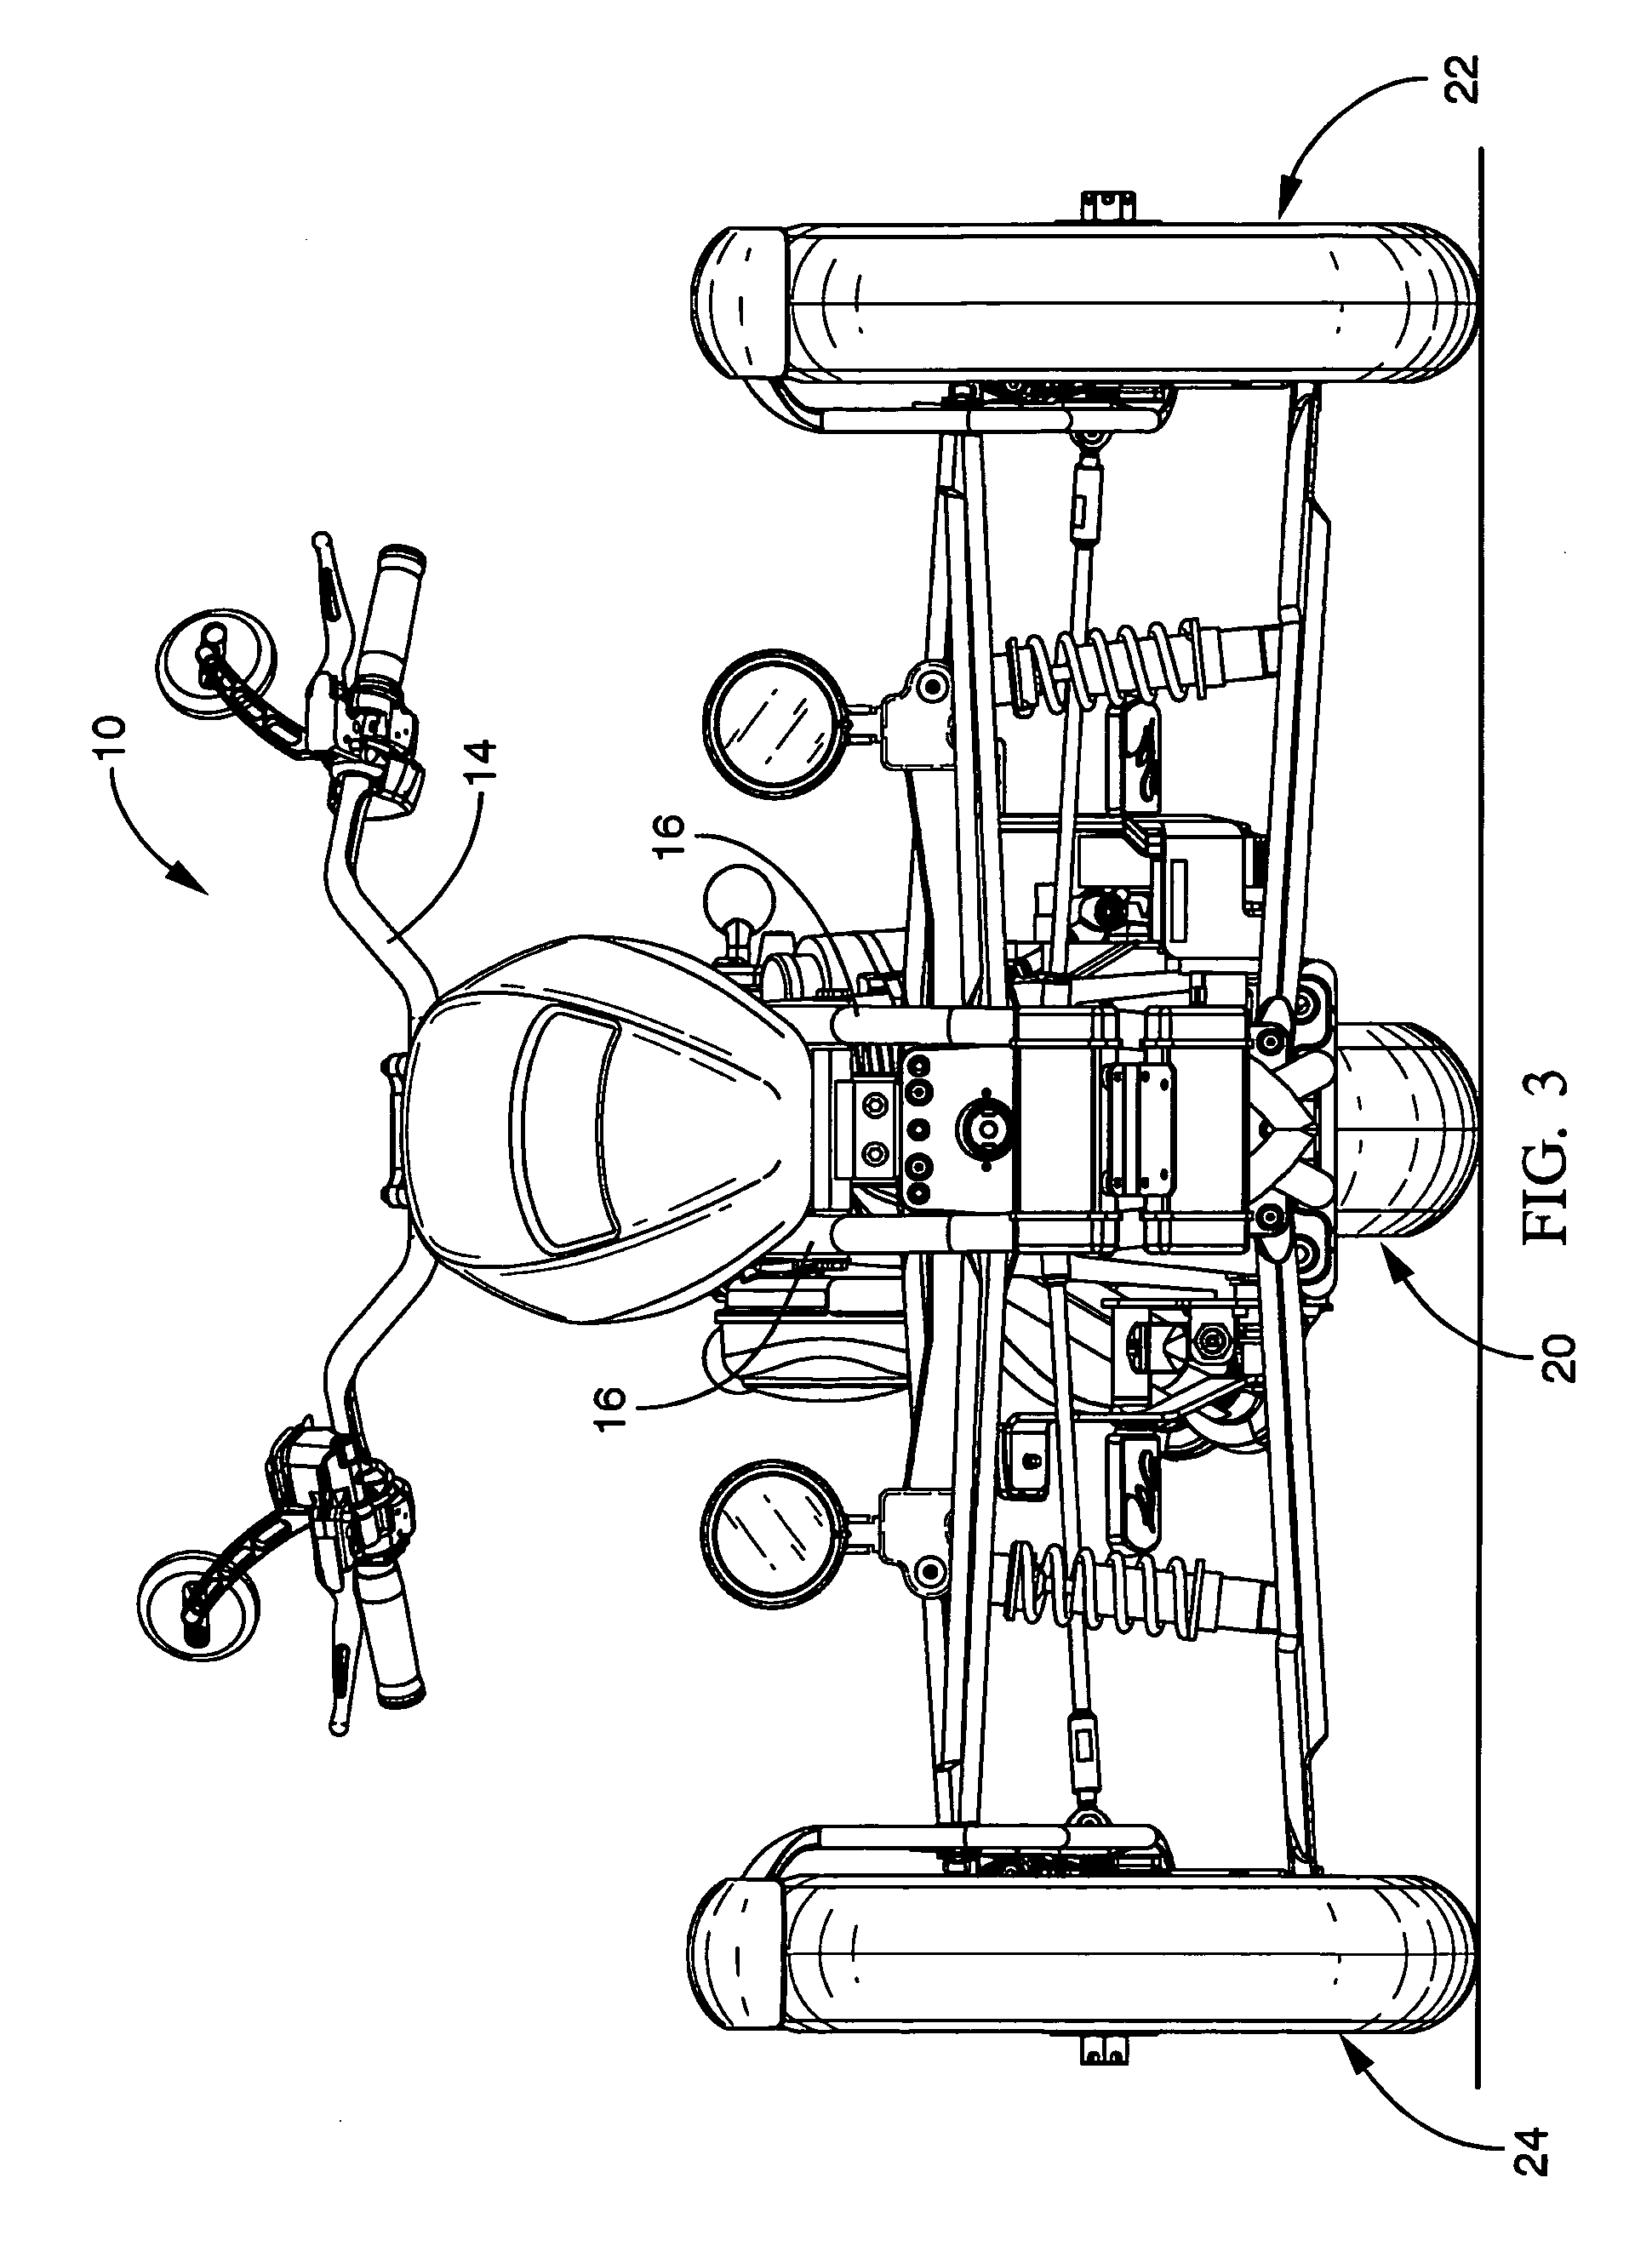 Patent Us7568541 Self Centering Return Mechanism Google Patents Infiniti Fuse Box Drawing